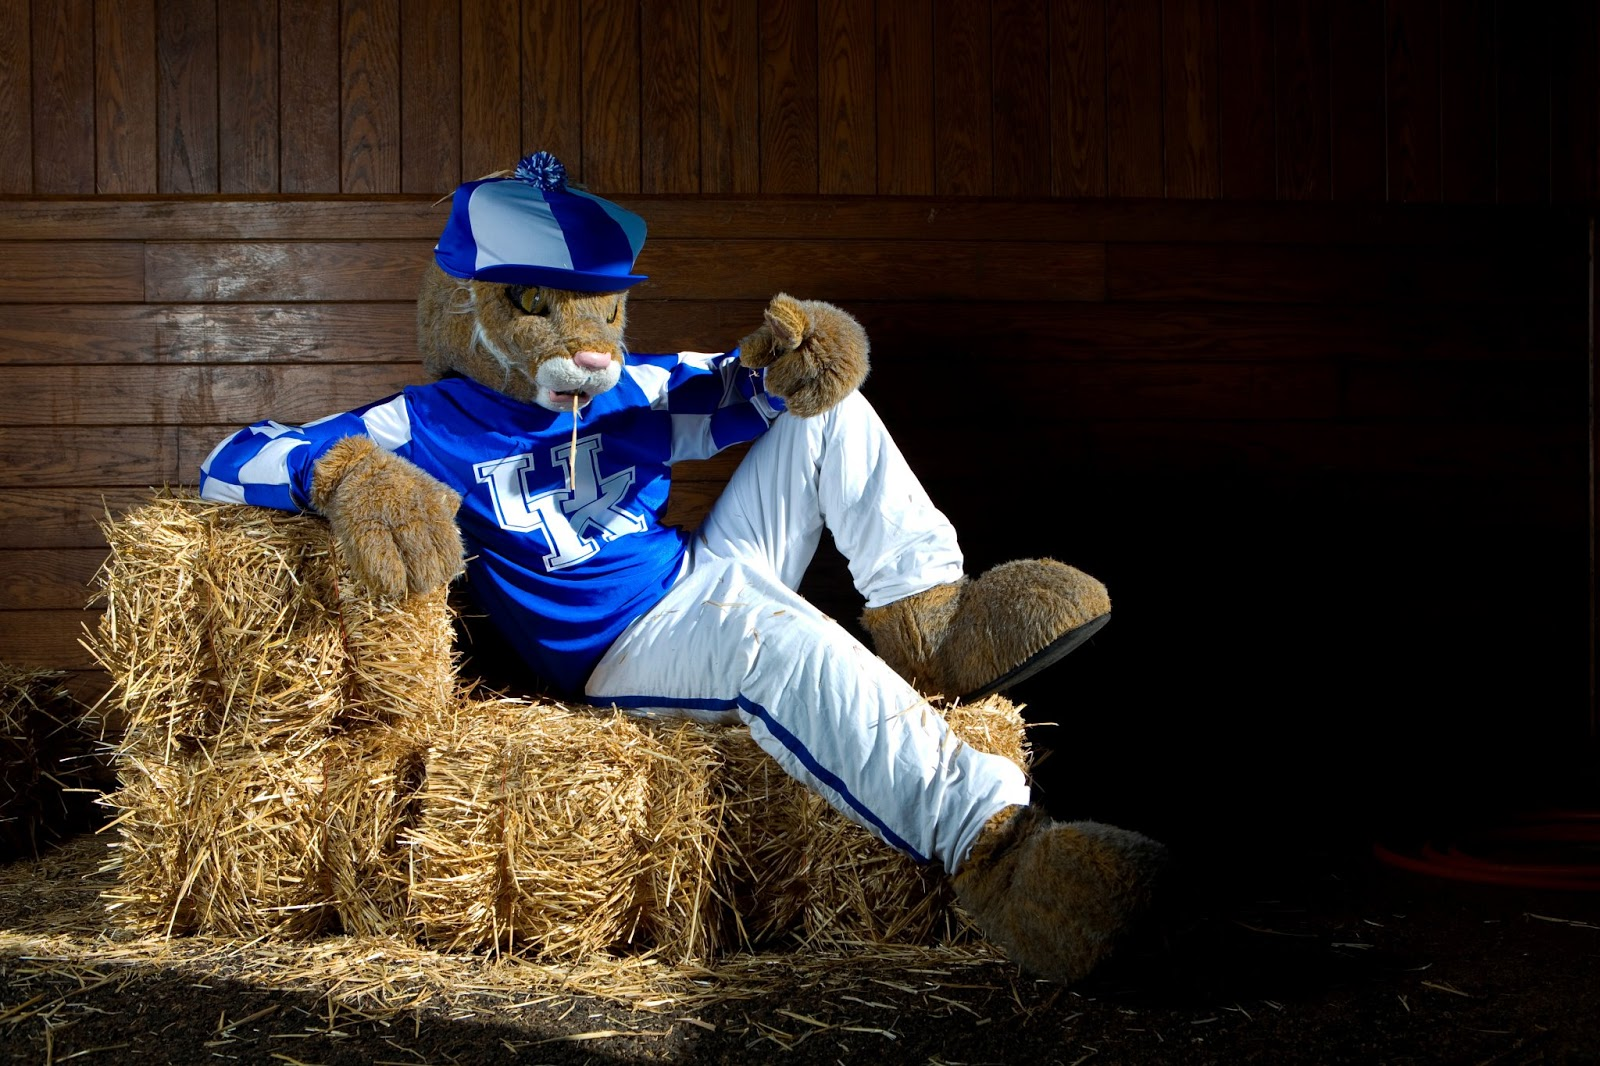 ukagstudents beyond the costume a look into the life of a mascot